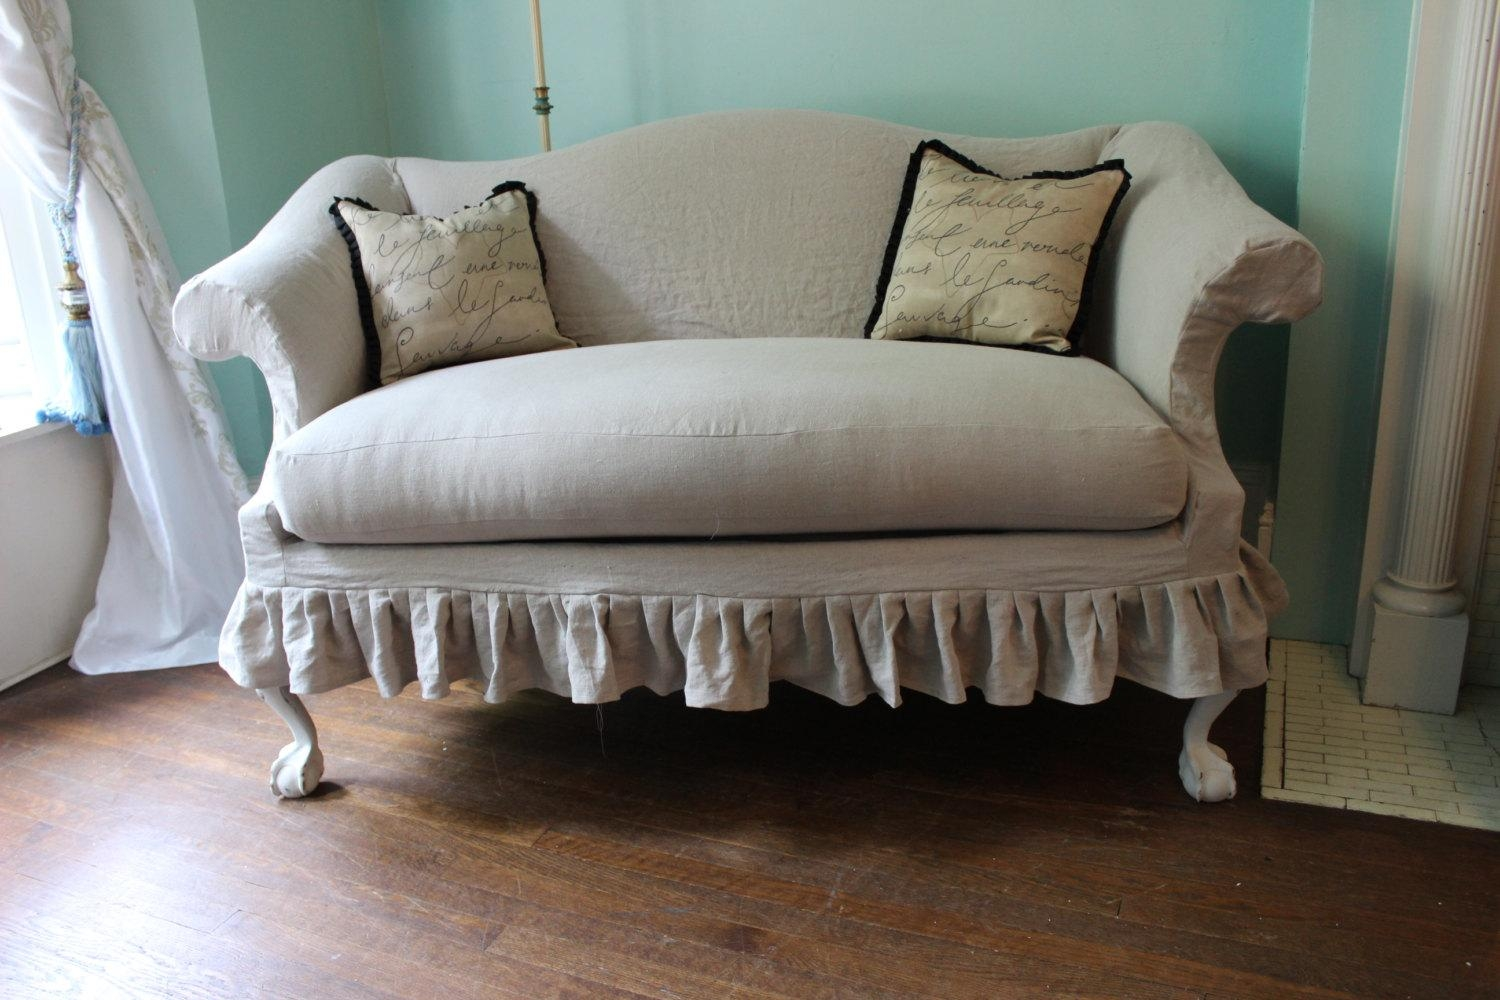 Old Reclining Loveseat Slipcover With White Color 2 Cushions And Intended For Sofa Loveseat Slipcovers (View 3 of 25)